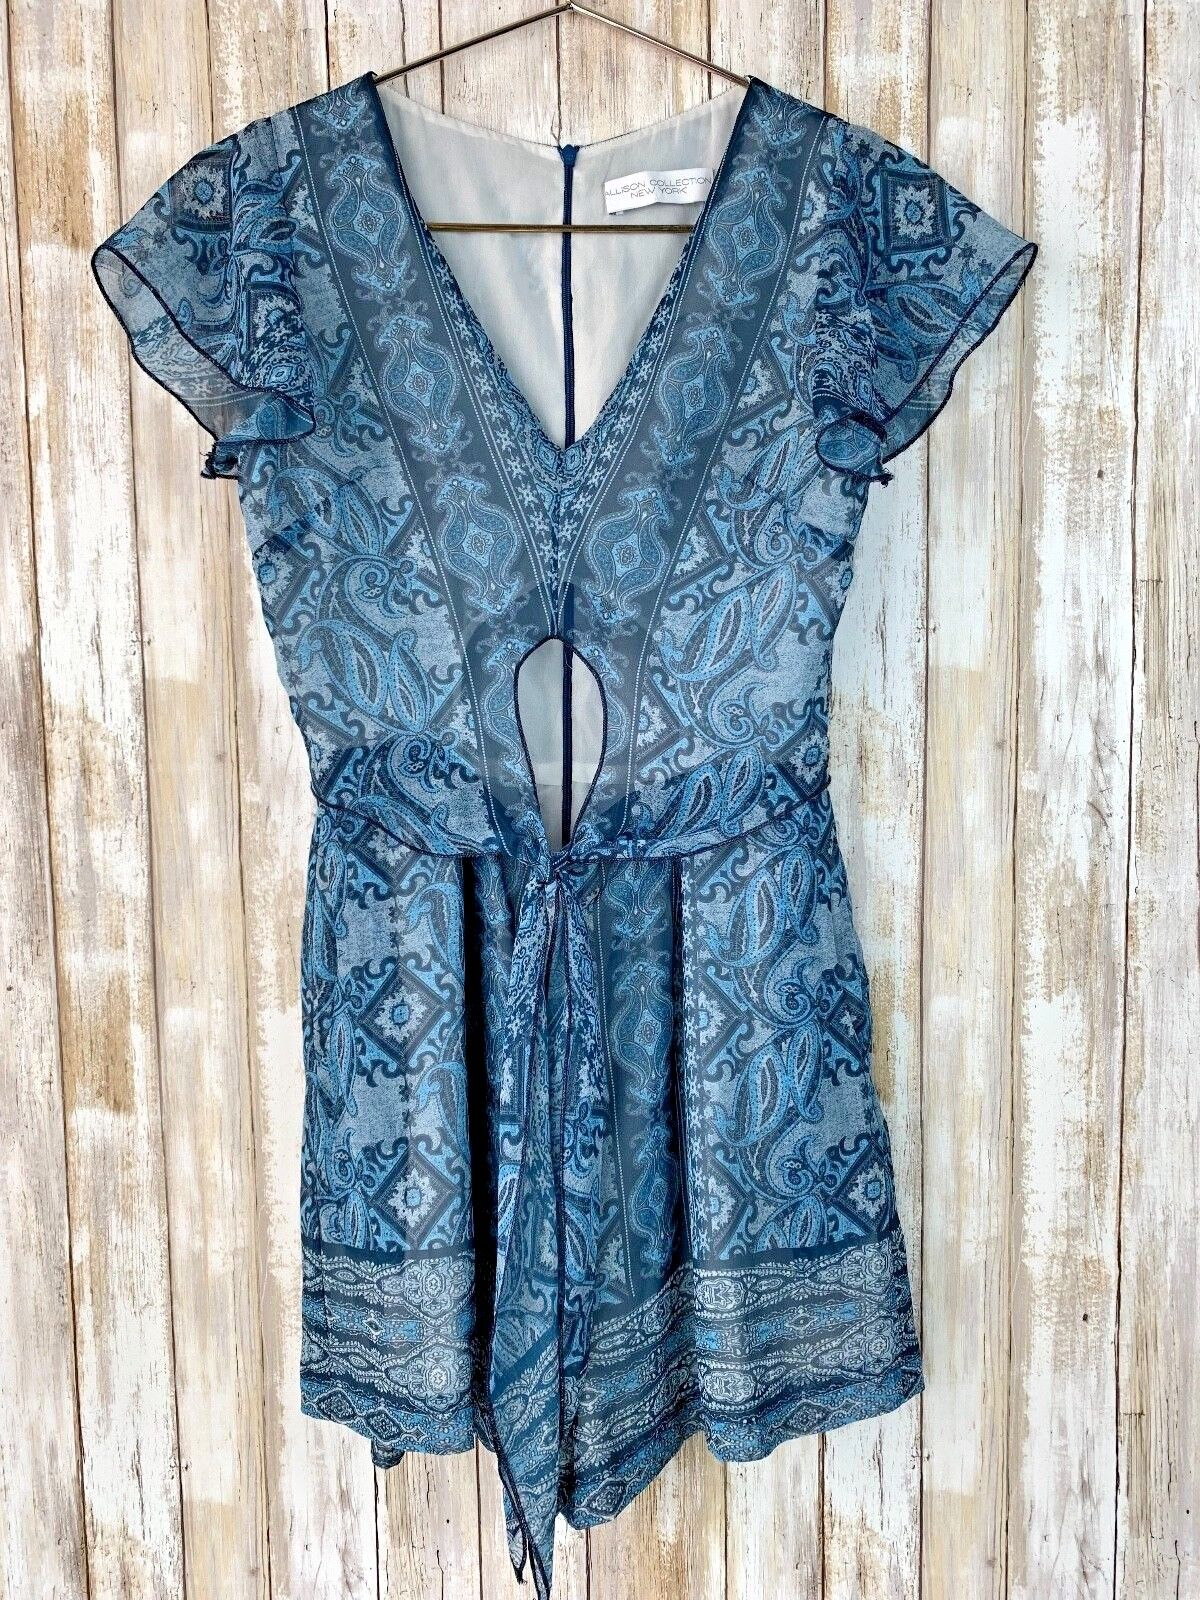 200 Allison Collection New York bluee Paisley Romper Tie Front Cut Out S Small